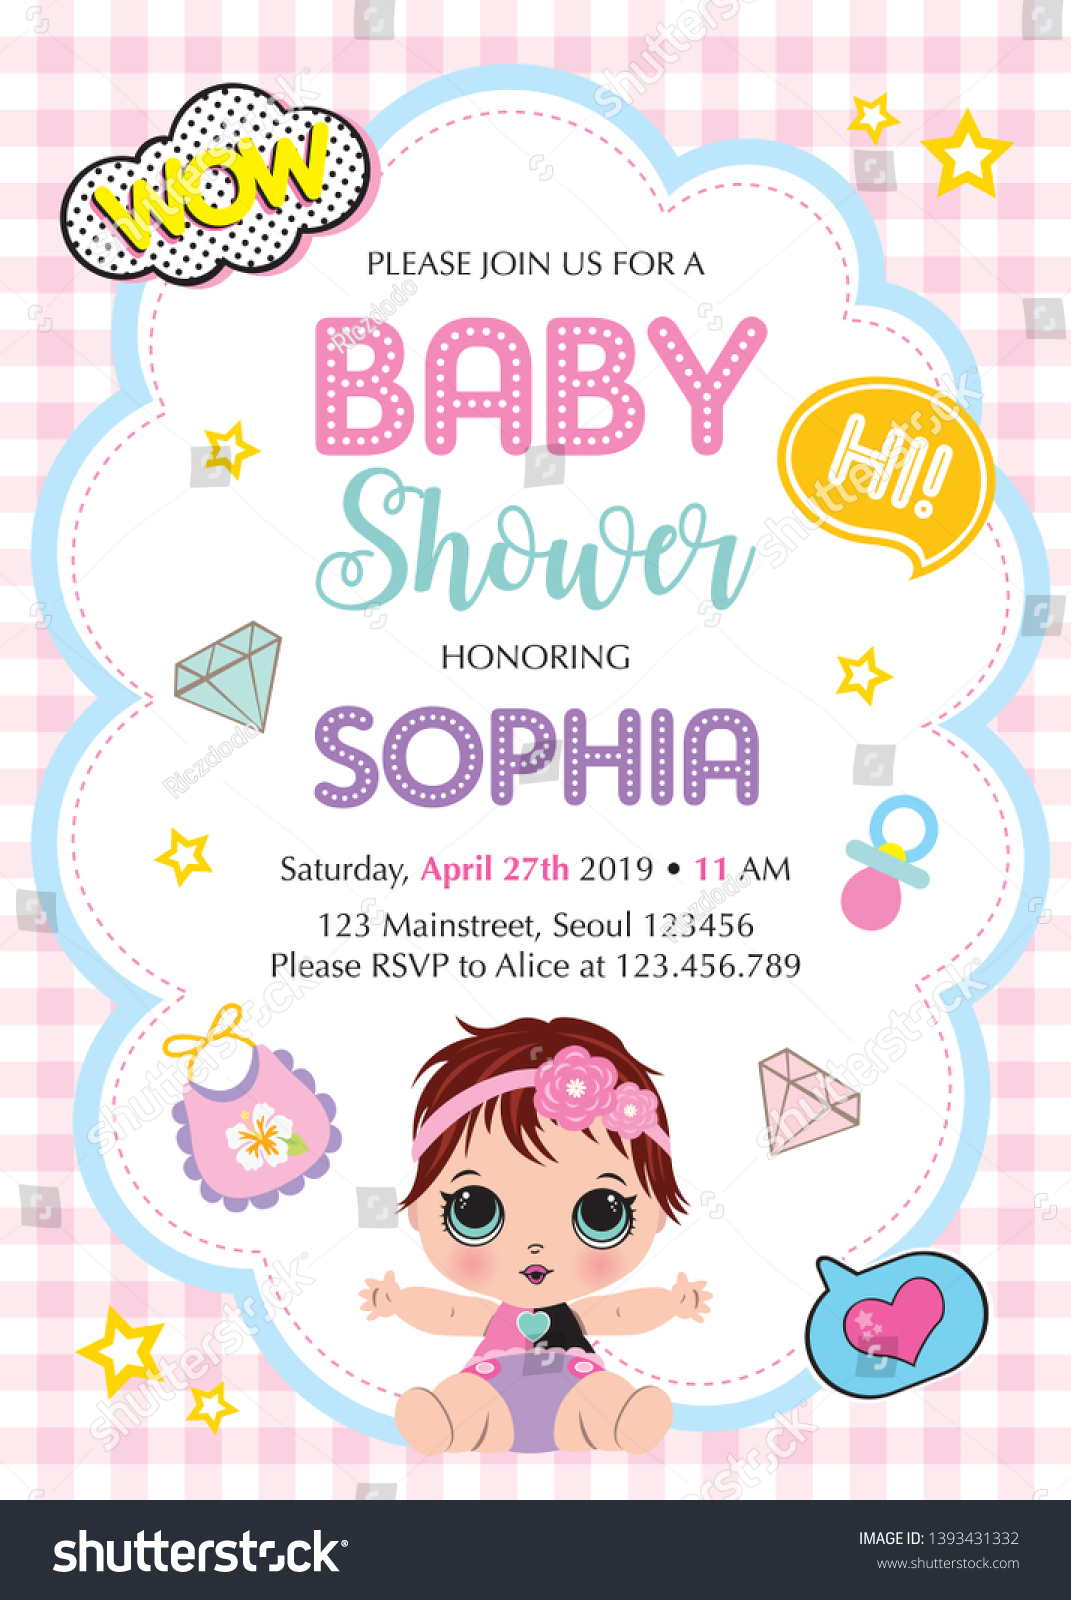 Girl Invitation Card Template Cute Baby Stock Vector Royalty Free